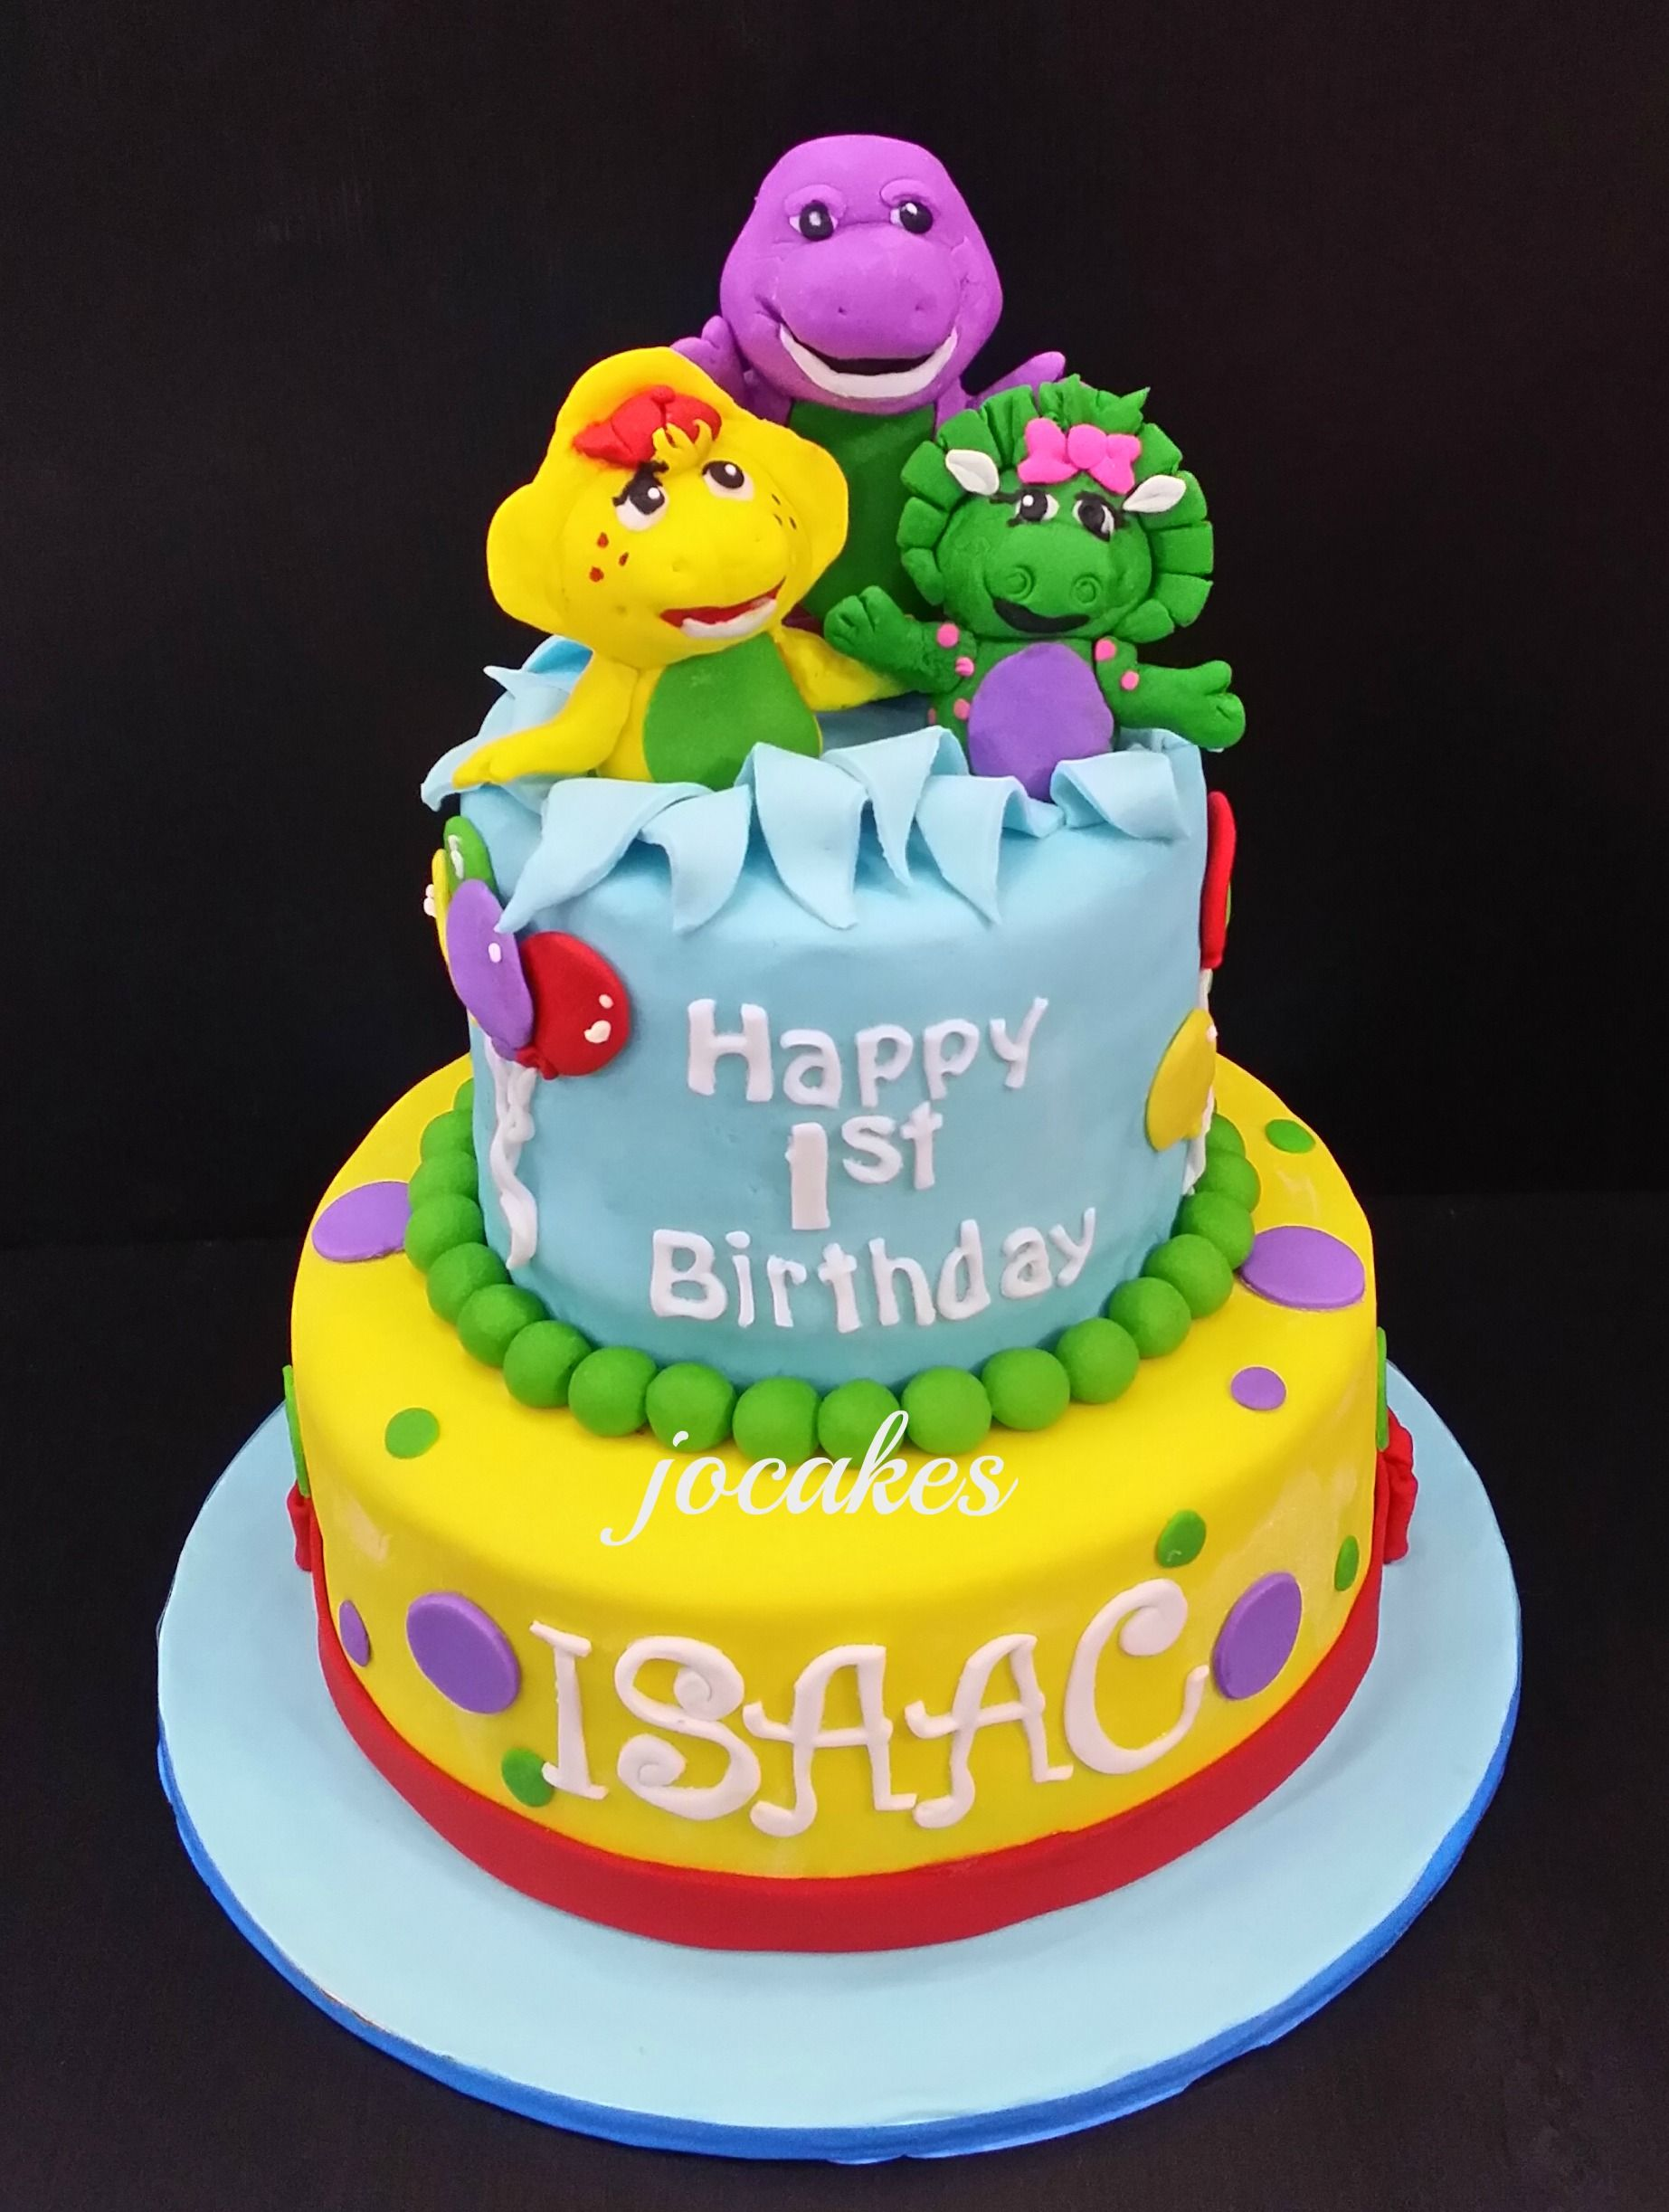 Terrific Barney And Friends Cake For Alexia Yong 1St Birthday Barney Personalised Birthday Cards Cominlily Jamesorg